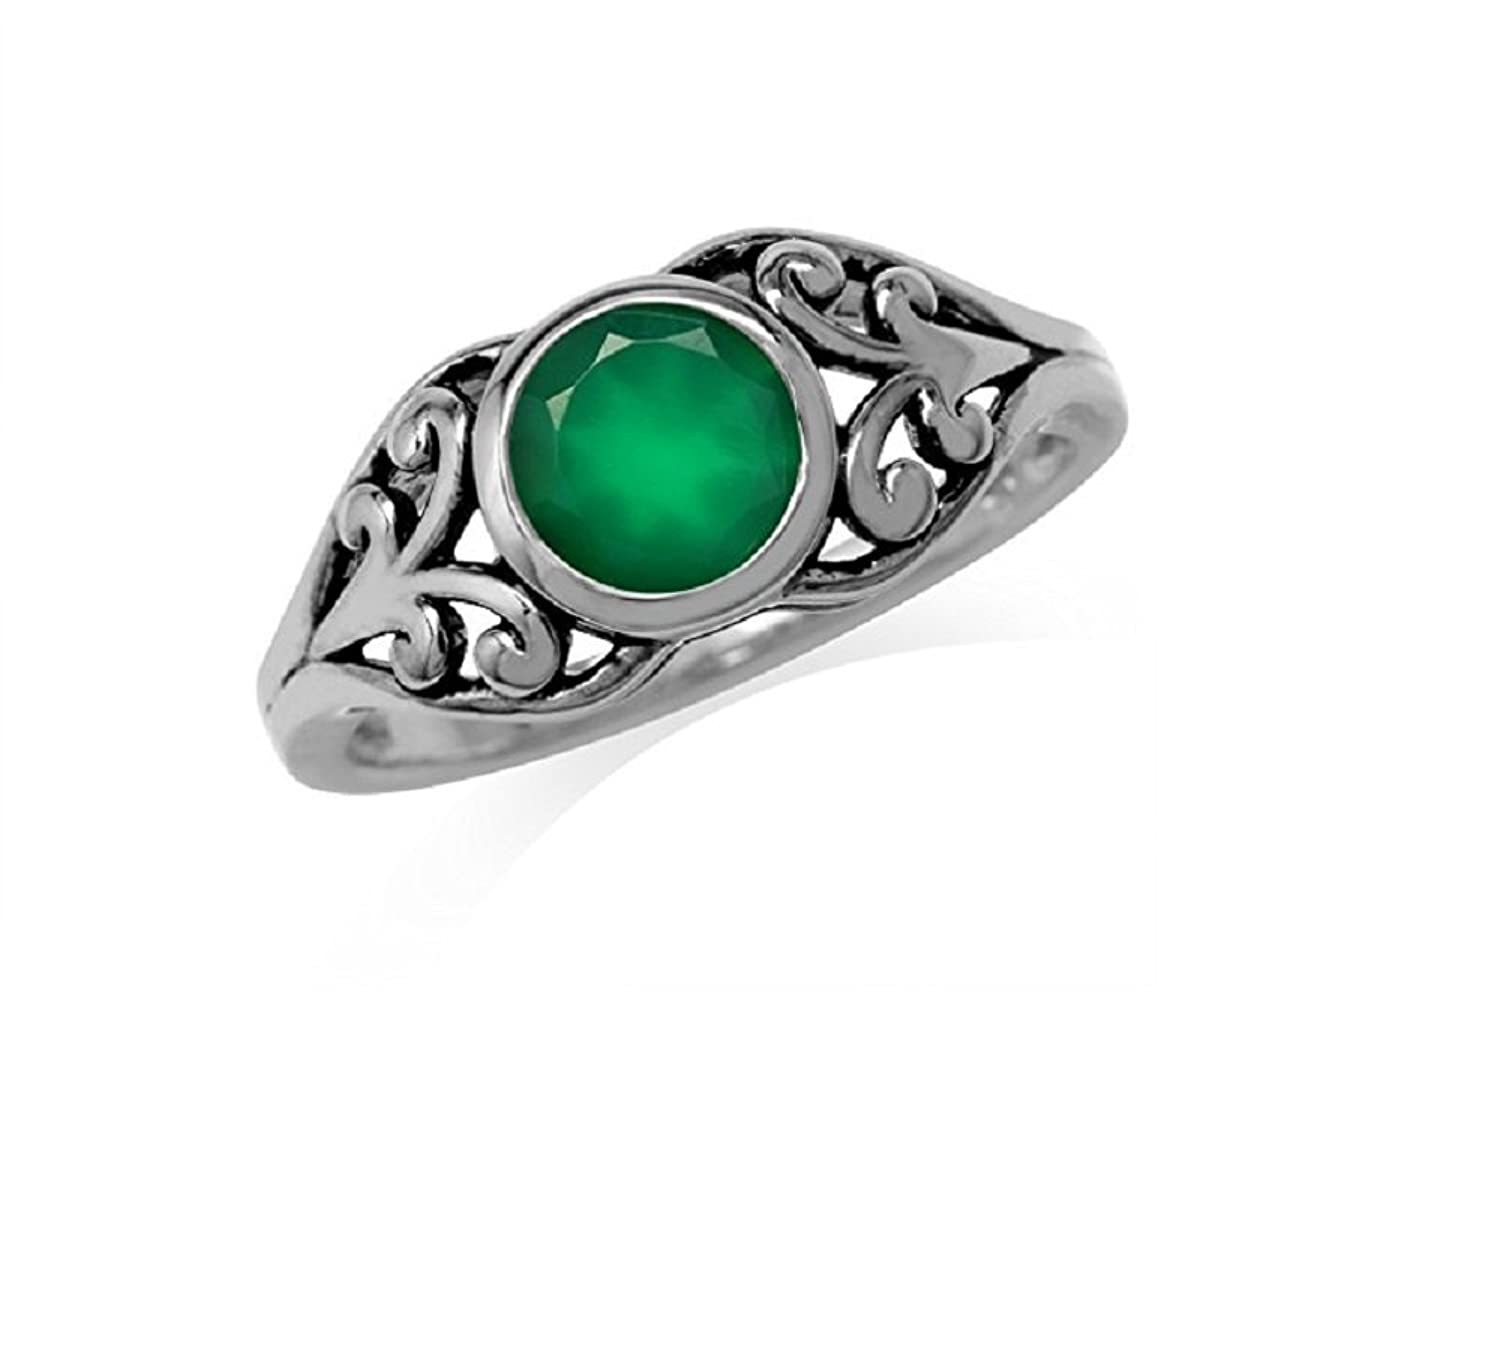 1.16ct. Natural Emerald Green Agate 925 Sterling Silver Filigree Solitaire Ring